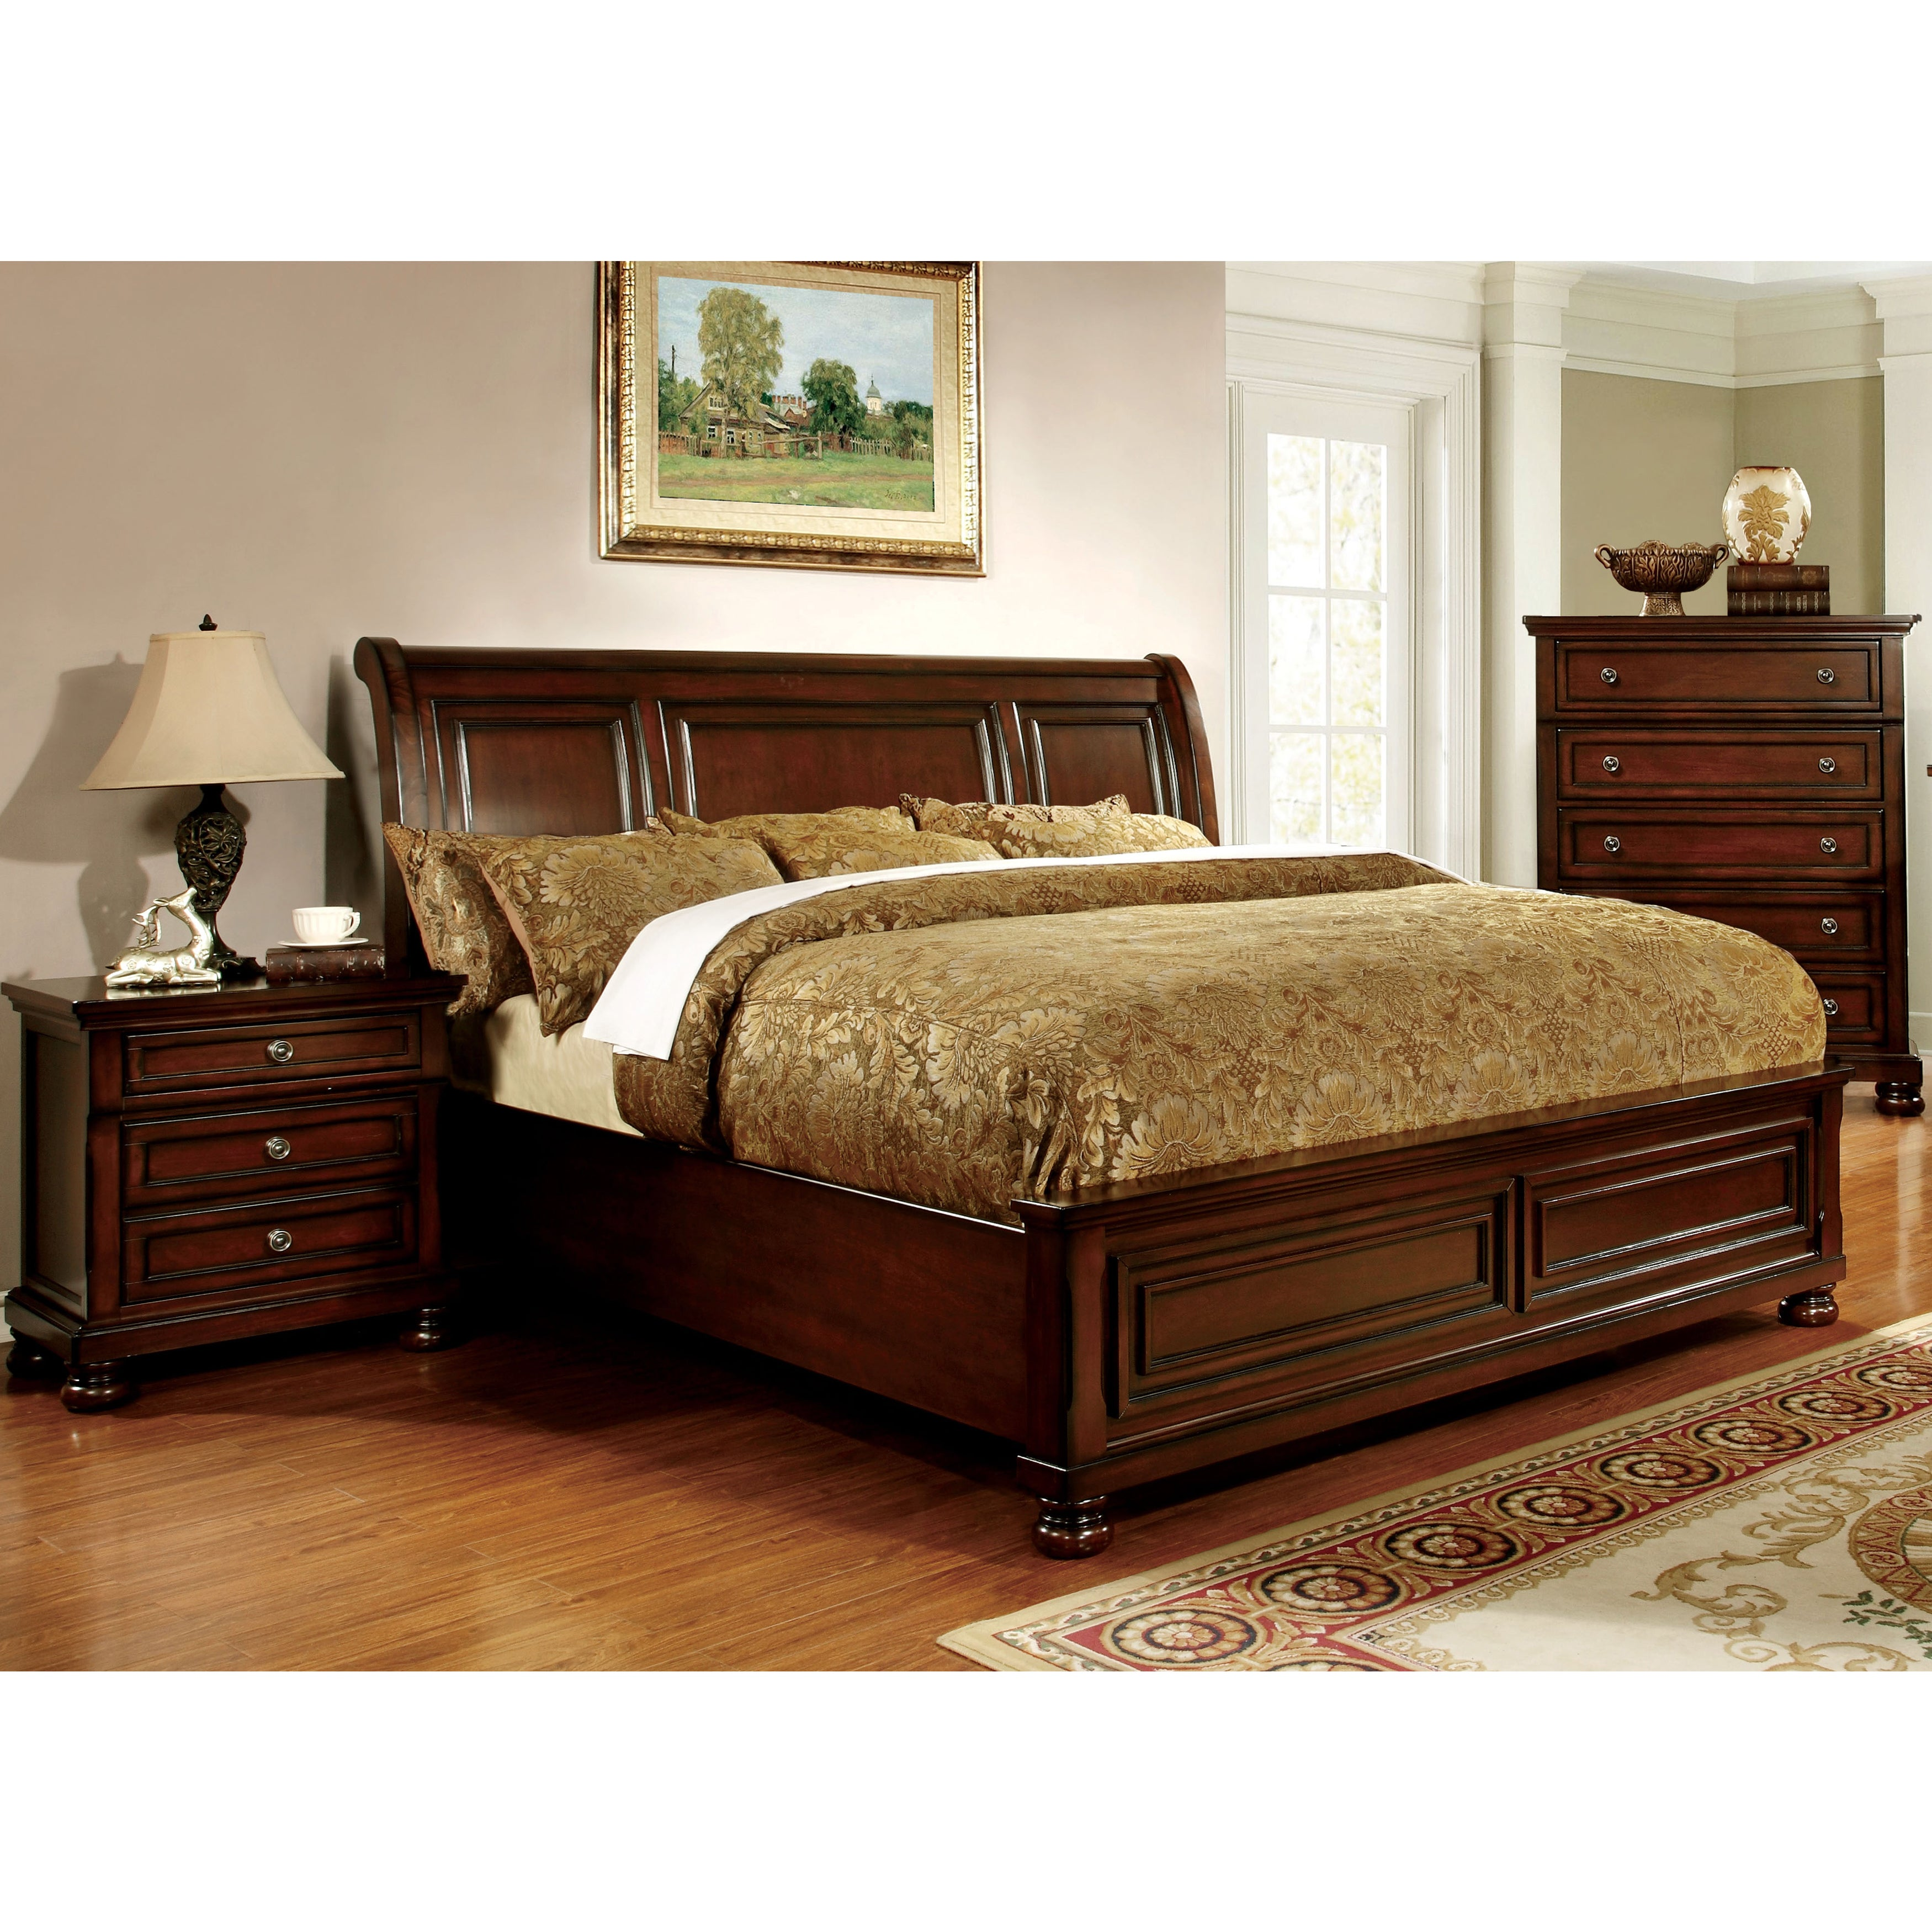 Furniture of America Barelle II Cherry Paneled Bed (King)...